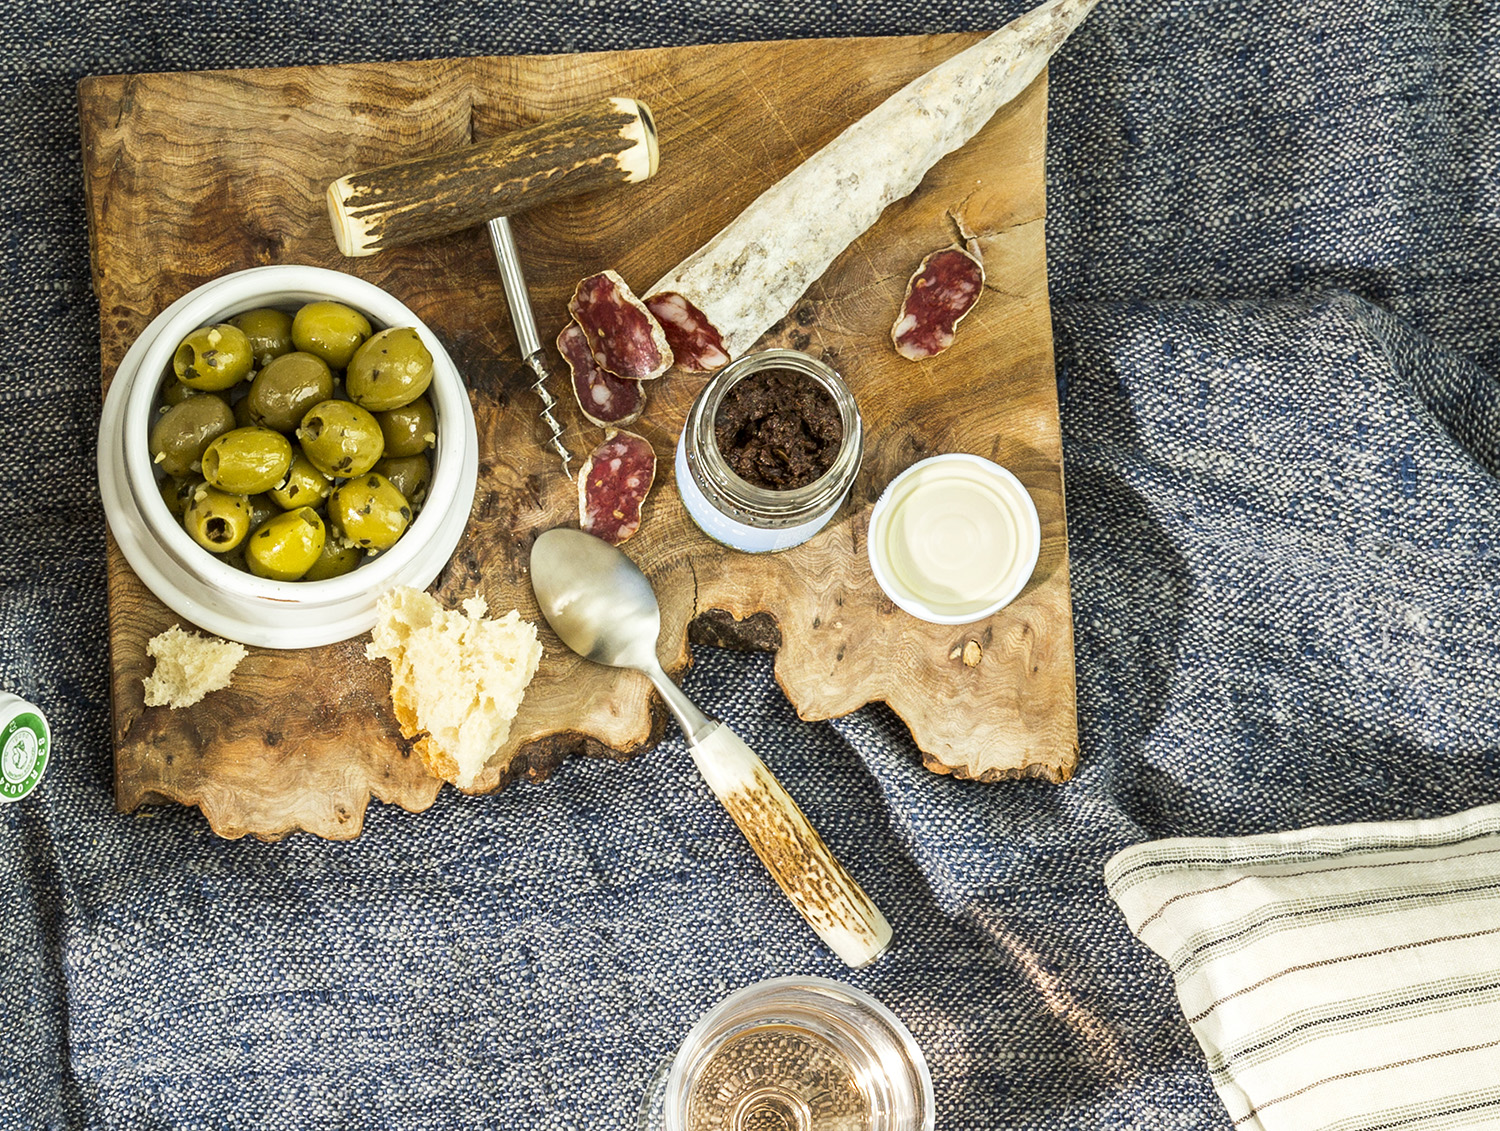 Tapenade, olives, and saucisson, on cutting board at picnic.